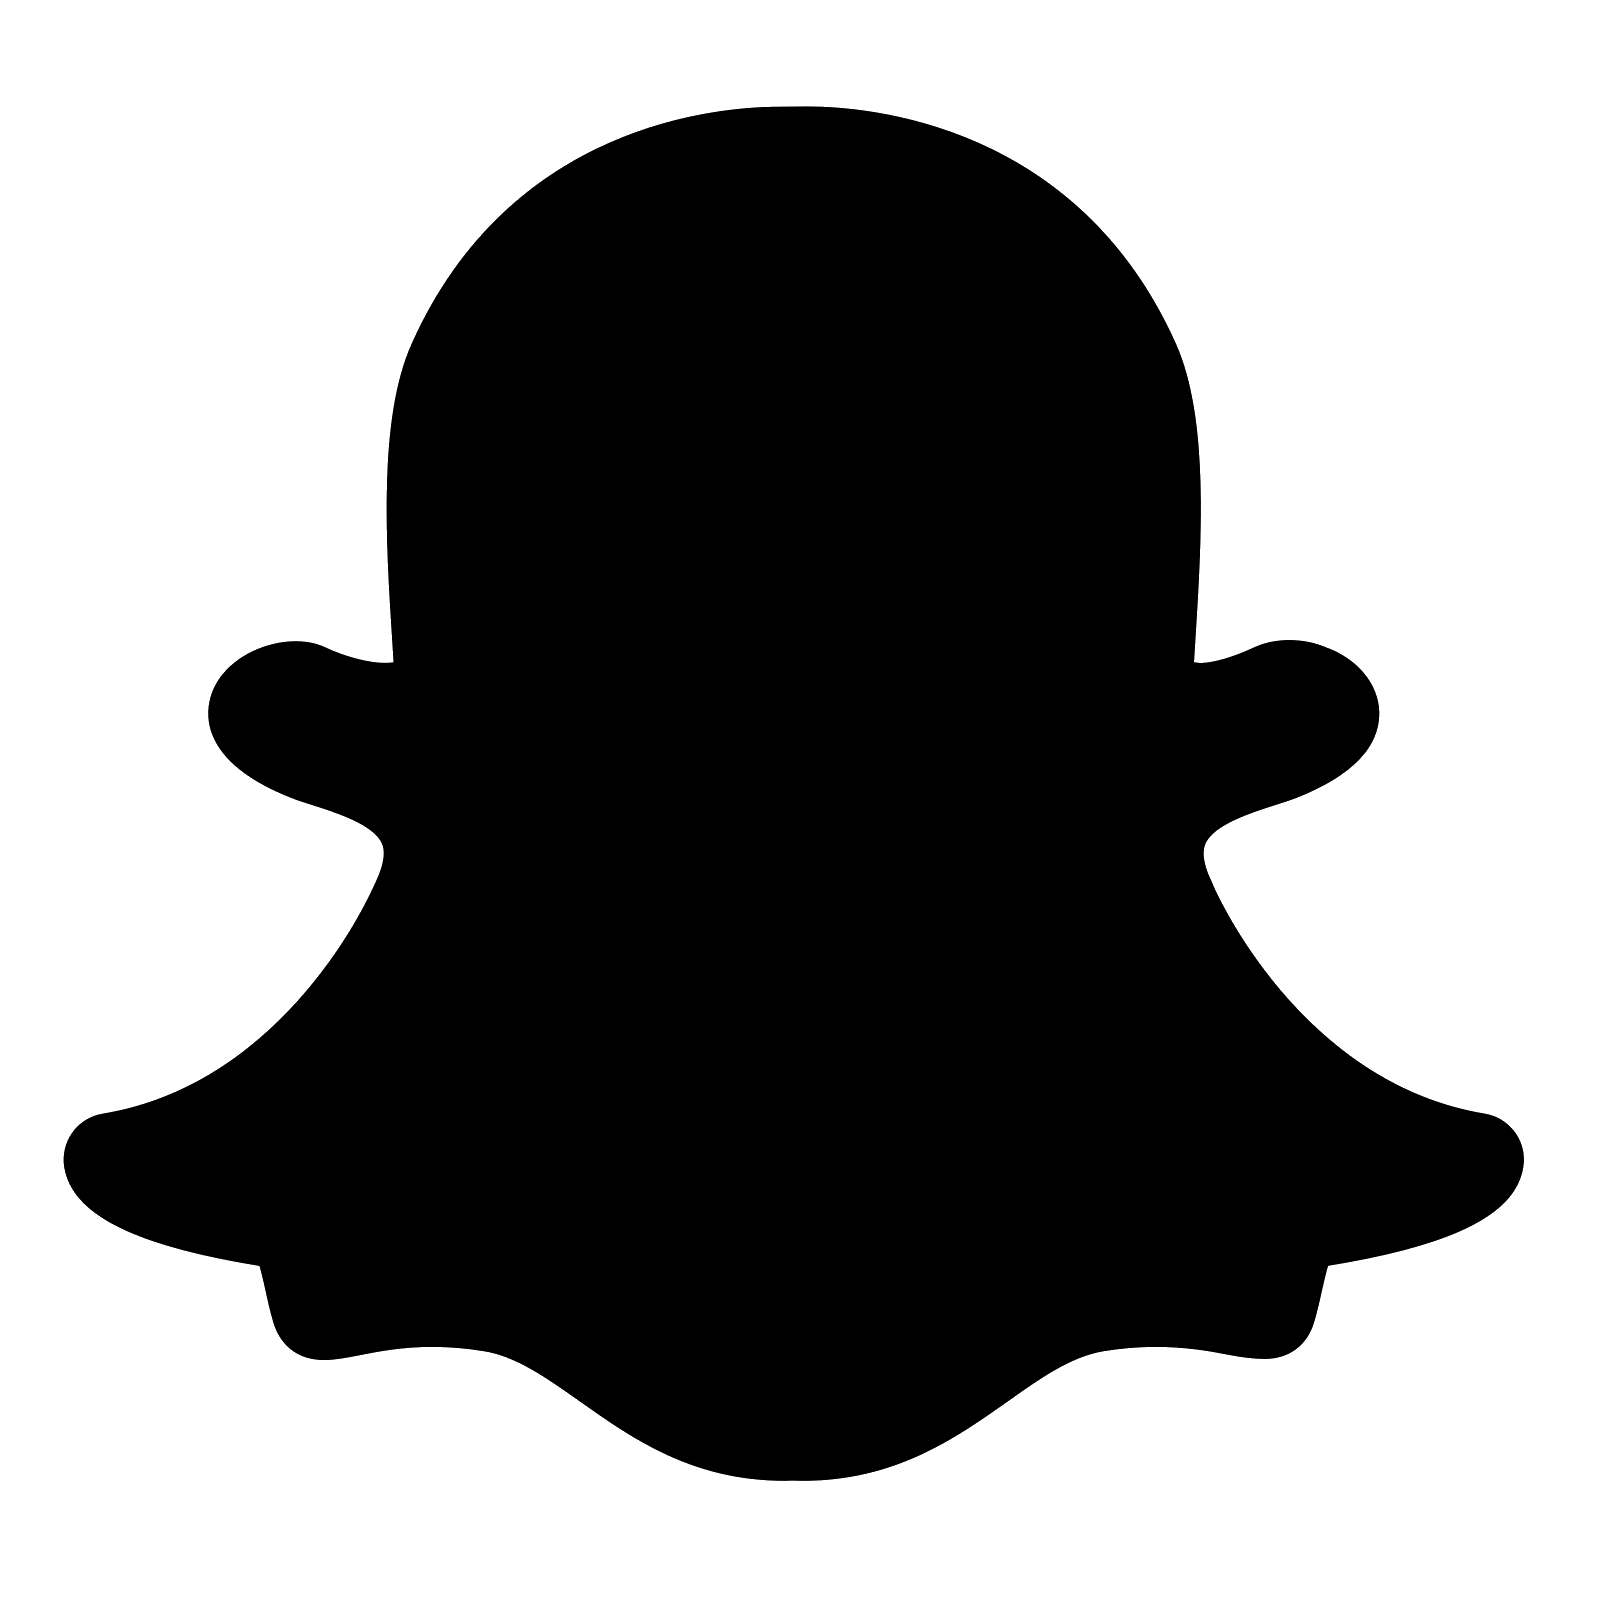 black logo snapchat filled png